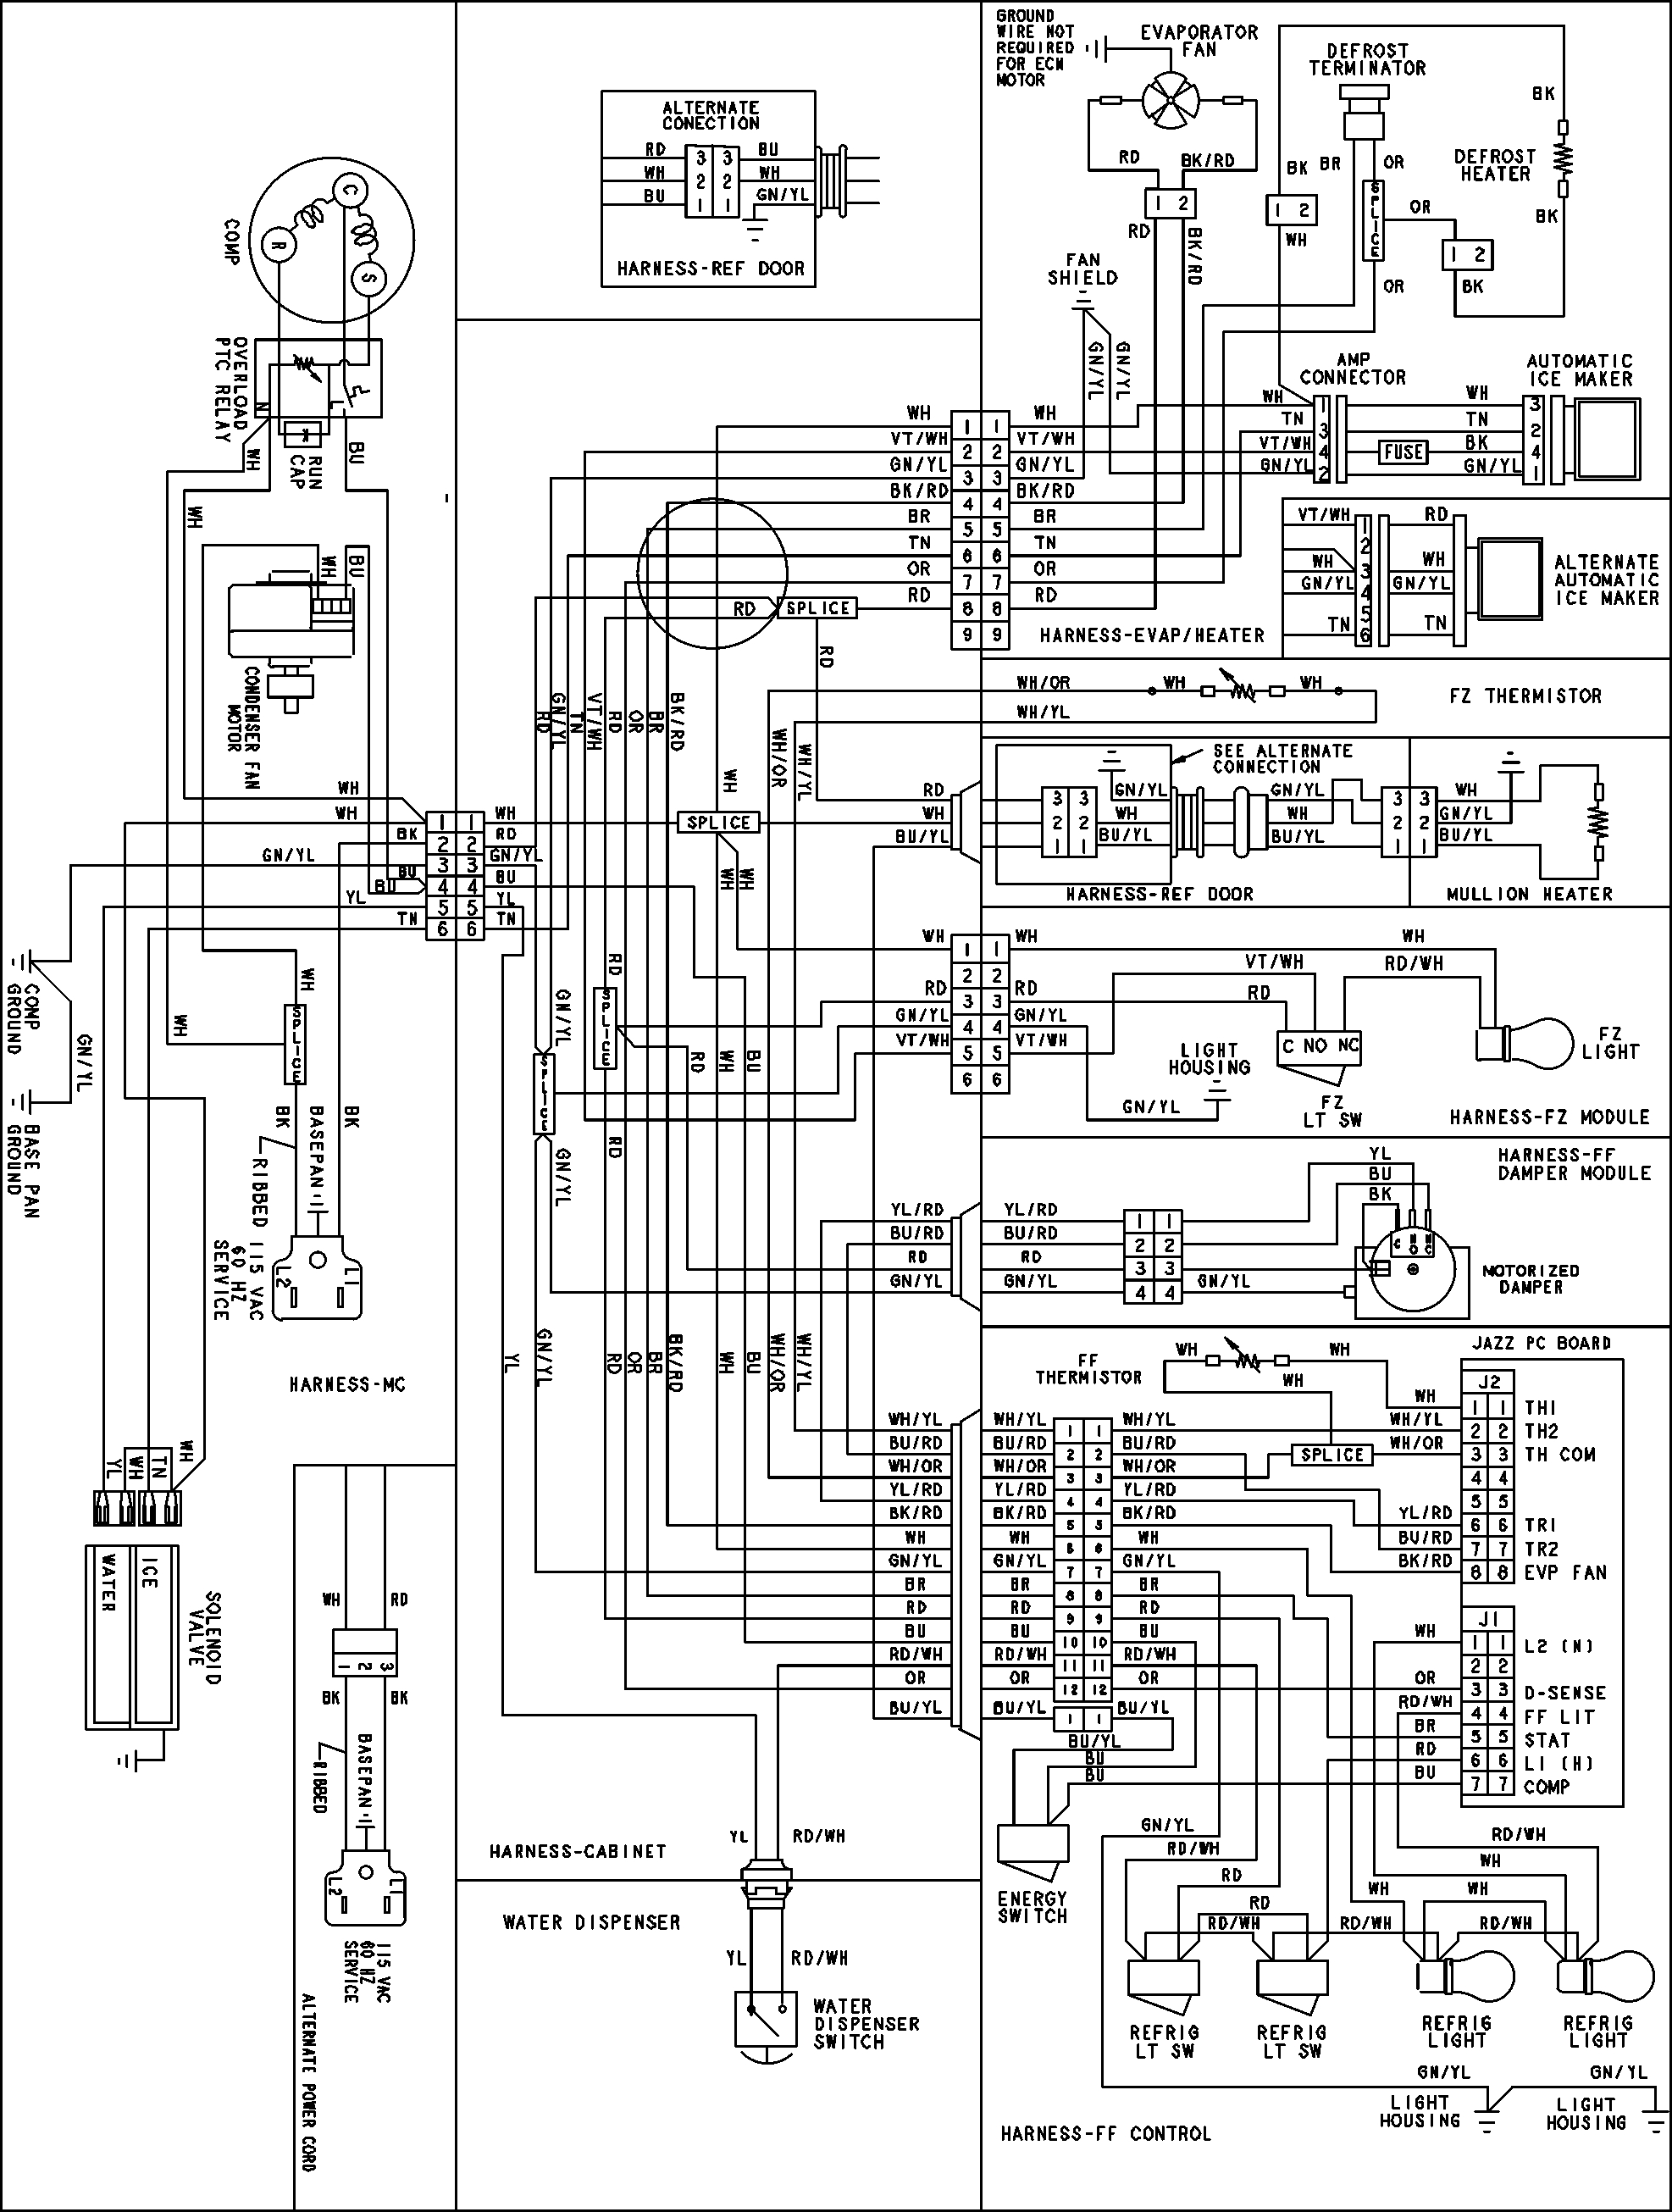 Amana Ptac Wiring Diagrams Wiring Diagram Bots Amana PTAC Wiring-Diagram  Fan Amana Ptac Wiring Diagram